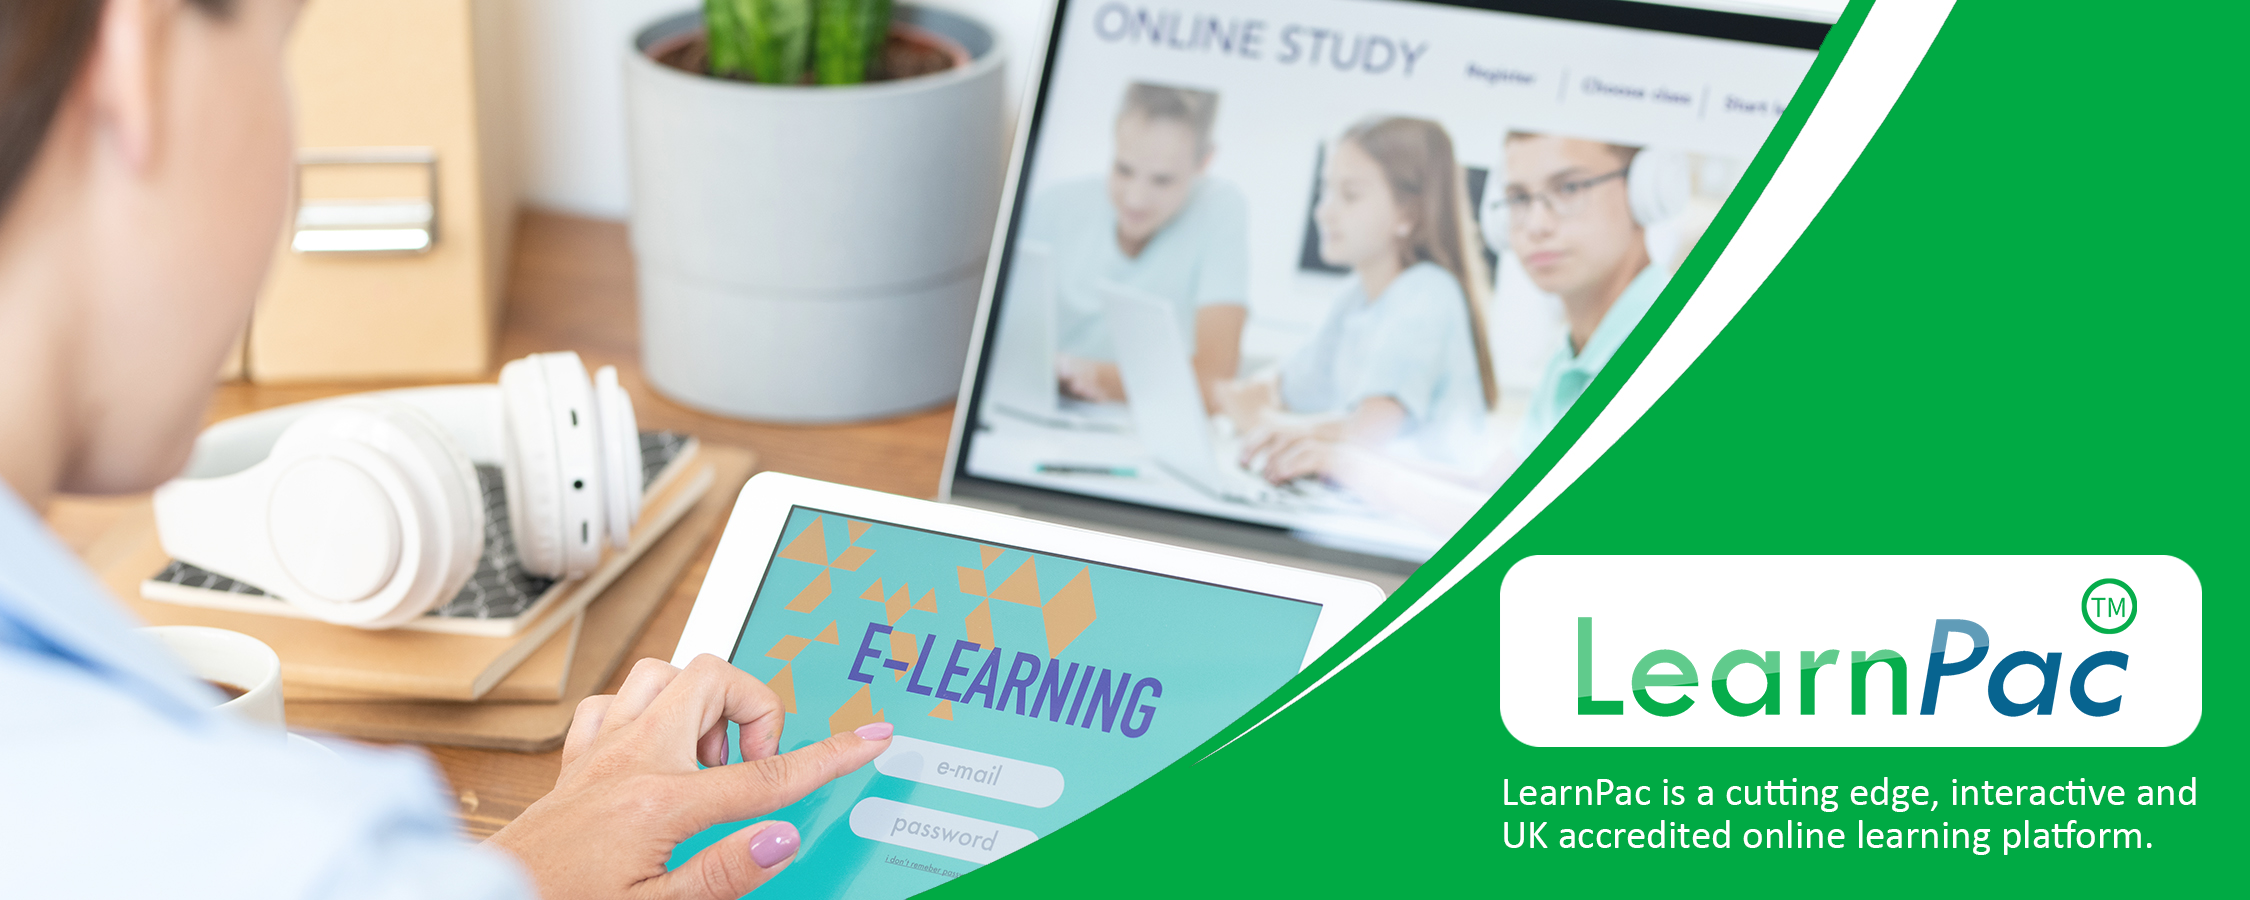 Personal Development Plan - eLearning Course - CPD Certified - LearnPac Systems UK -